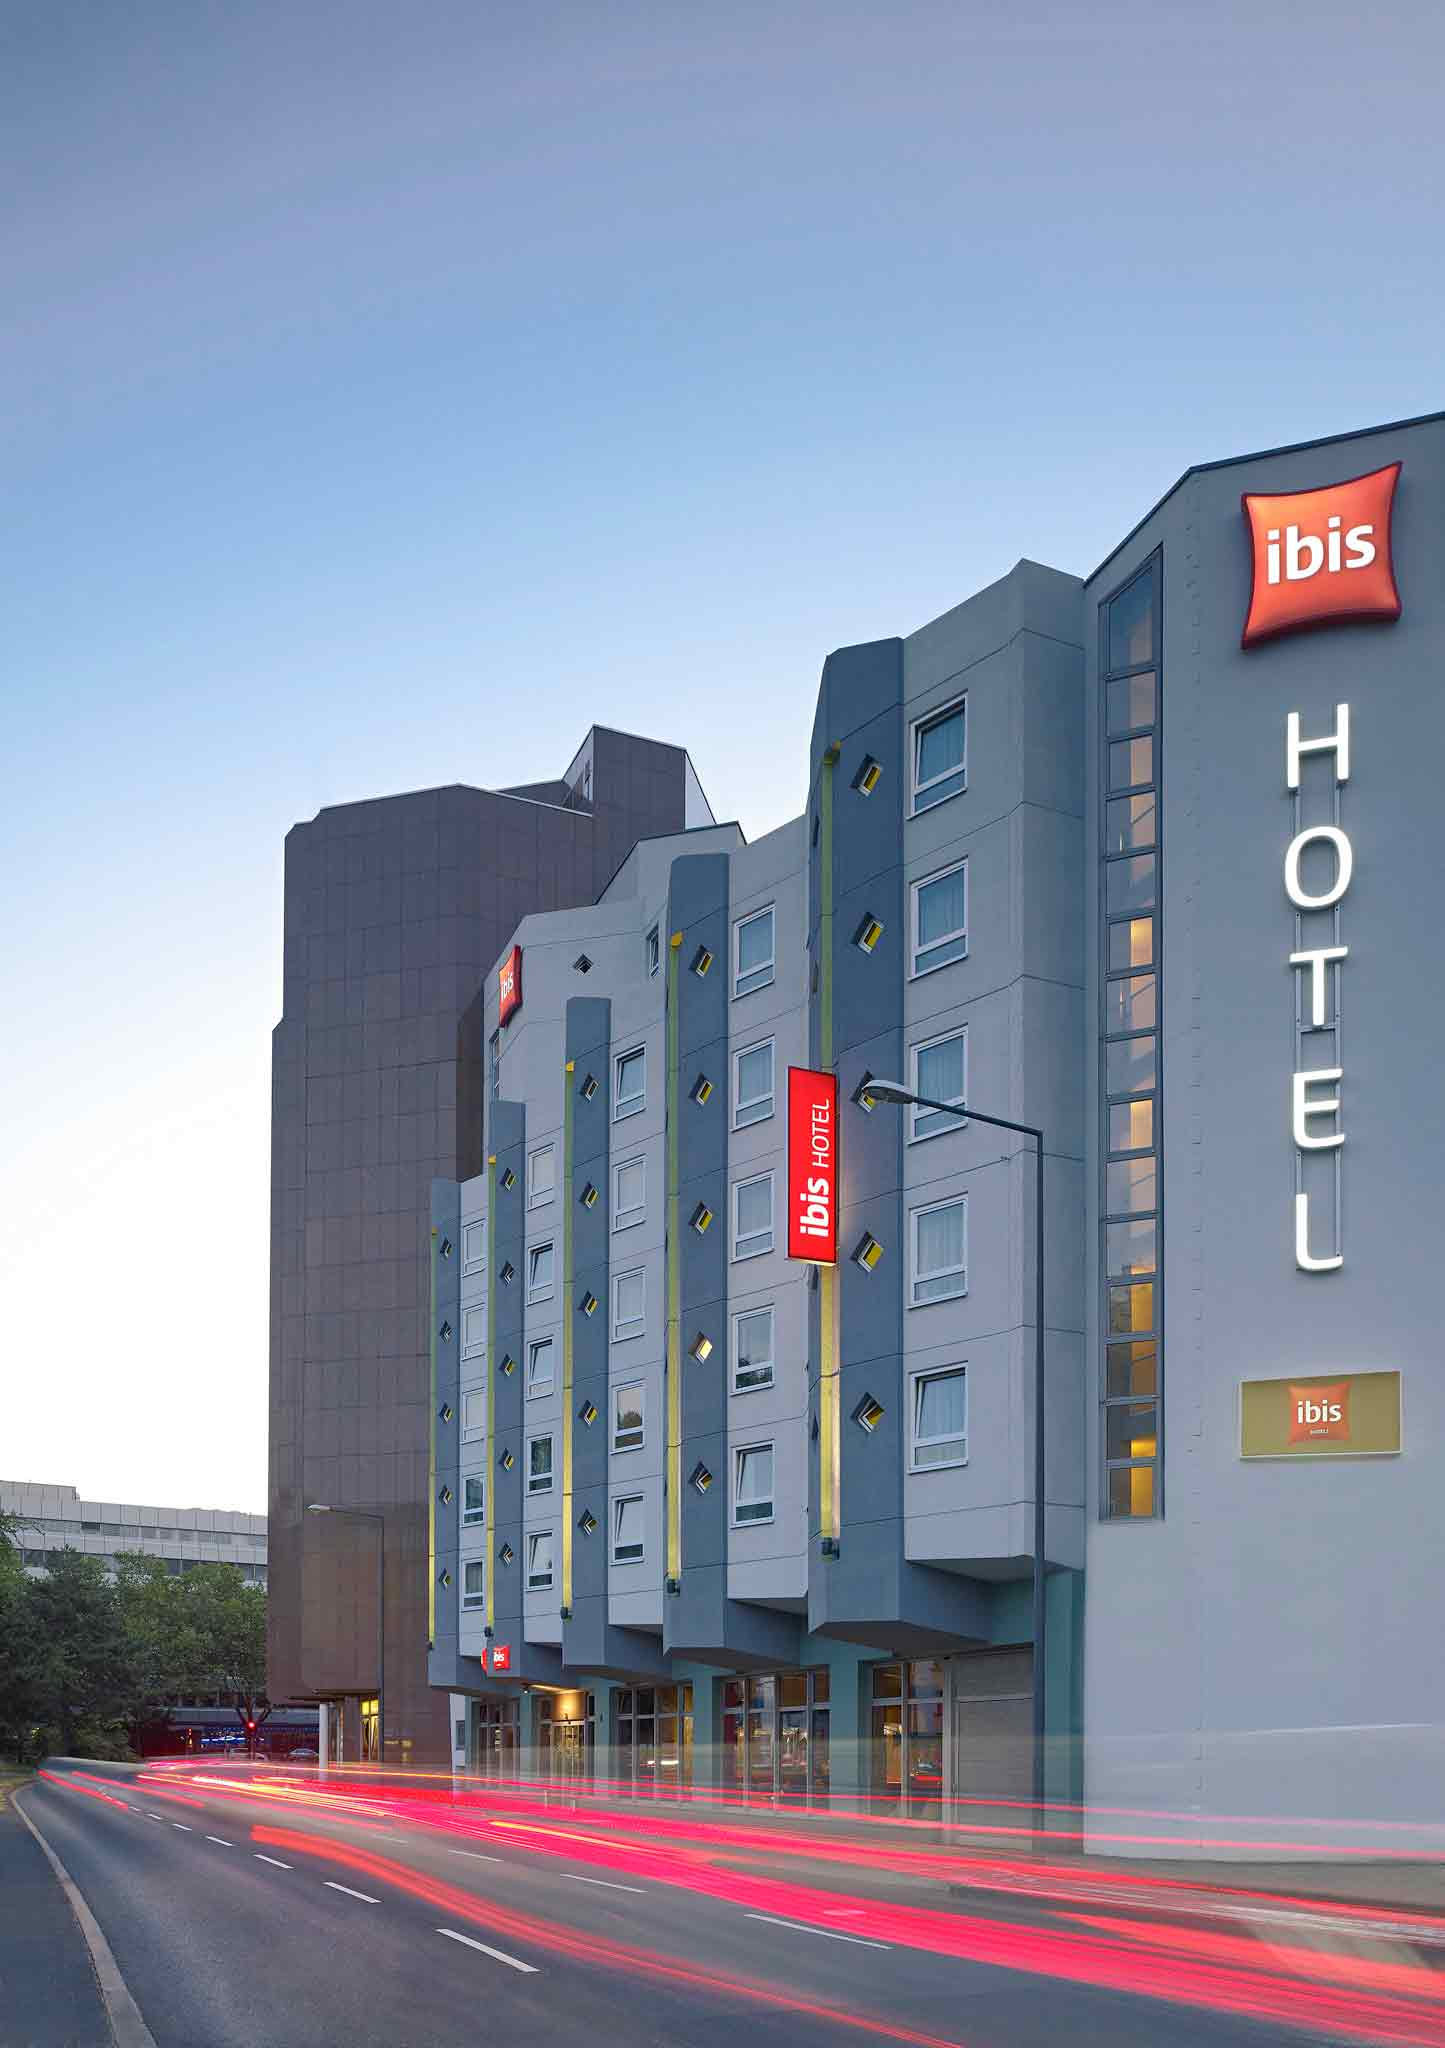 Hotels Koeln Hotel Ibis Cologne Centrum Book Your Hotel In Cologne Now